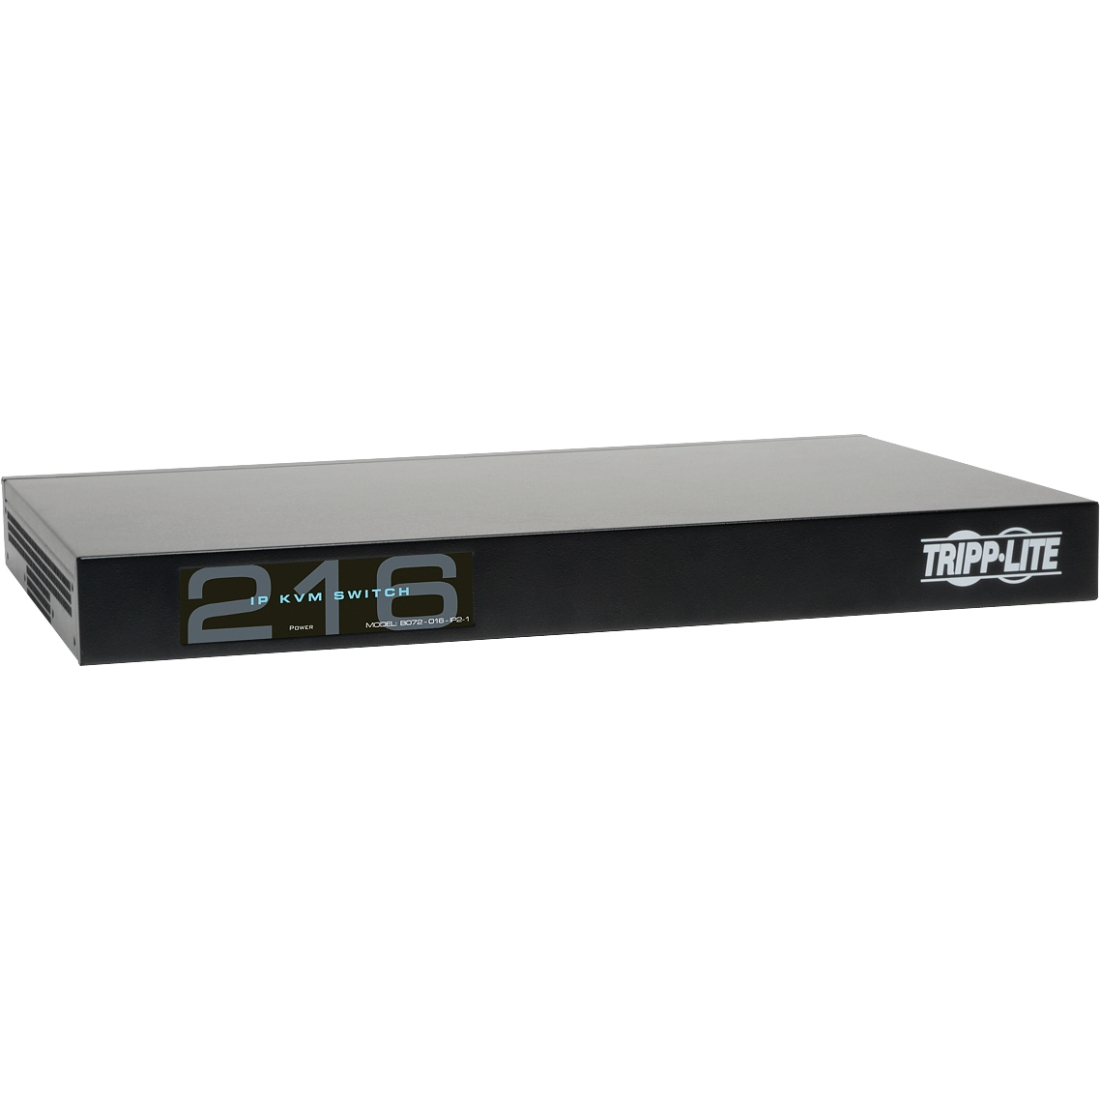 Tripp Lite B072-016-IP2 16port 1-local 2-remote User Perp Cat5 Kvm Over Ip Switch 1urm by Tripp Lite